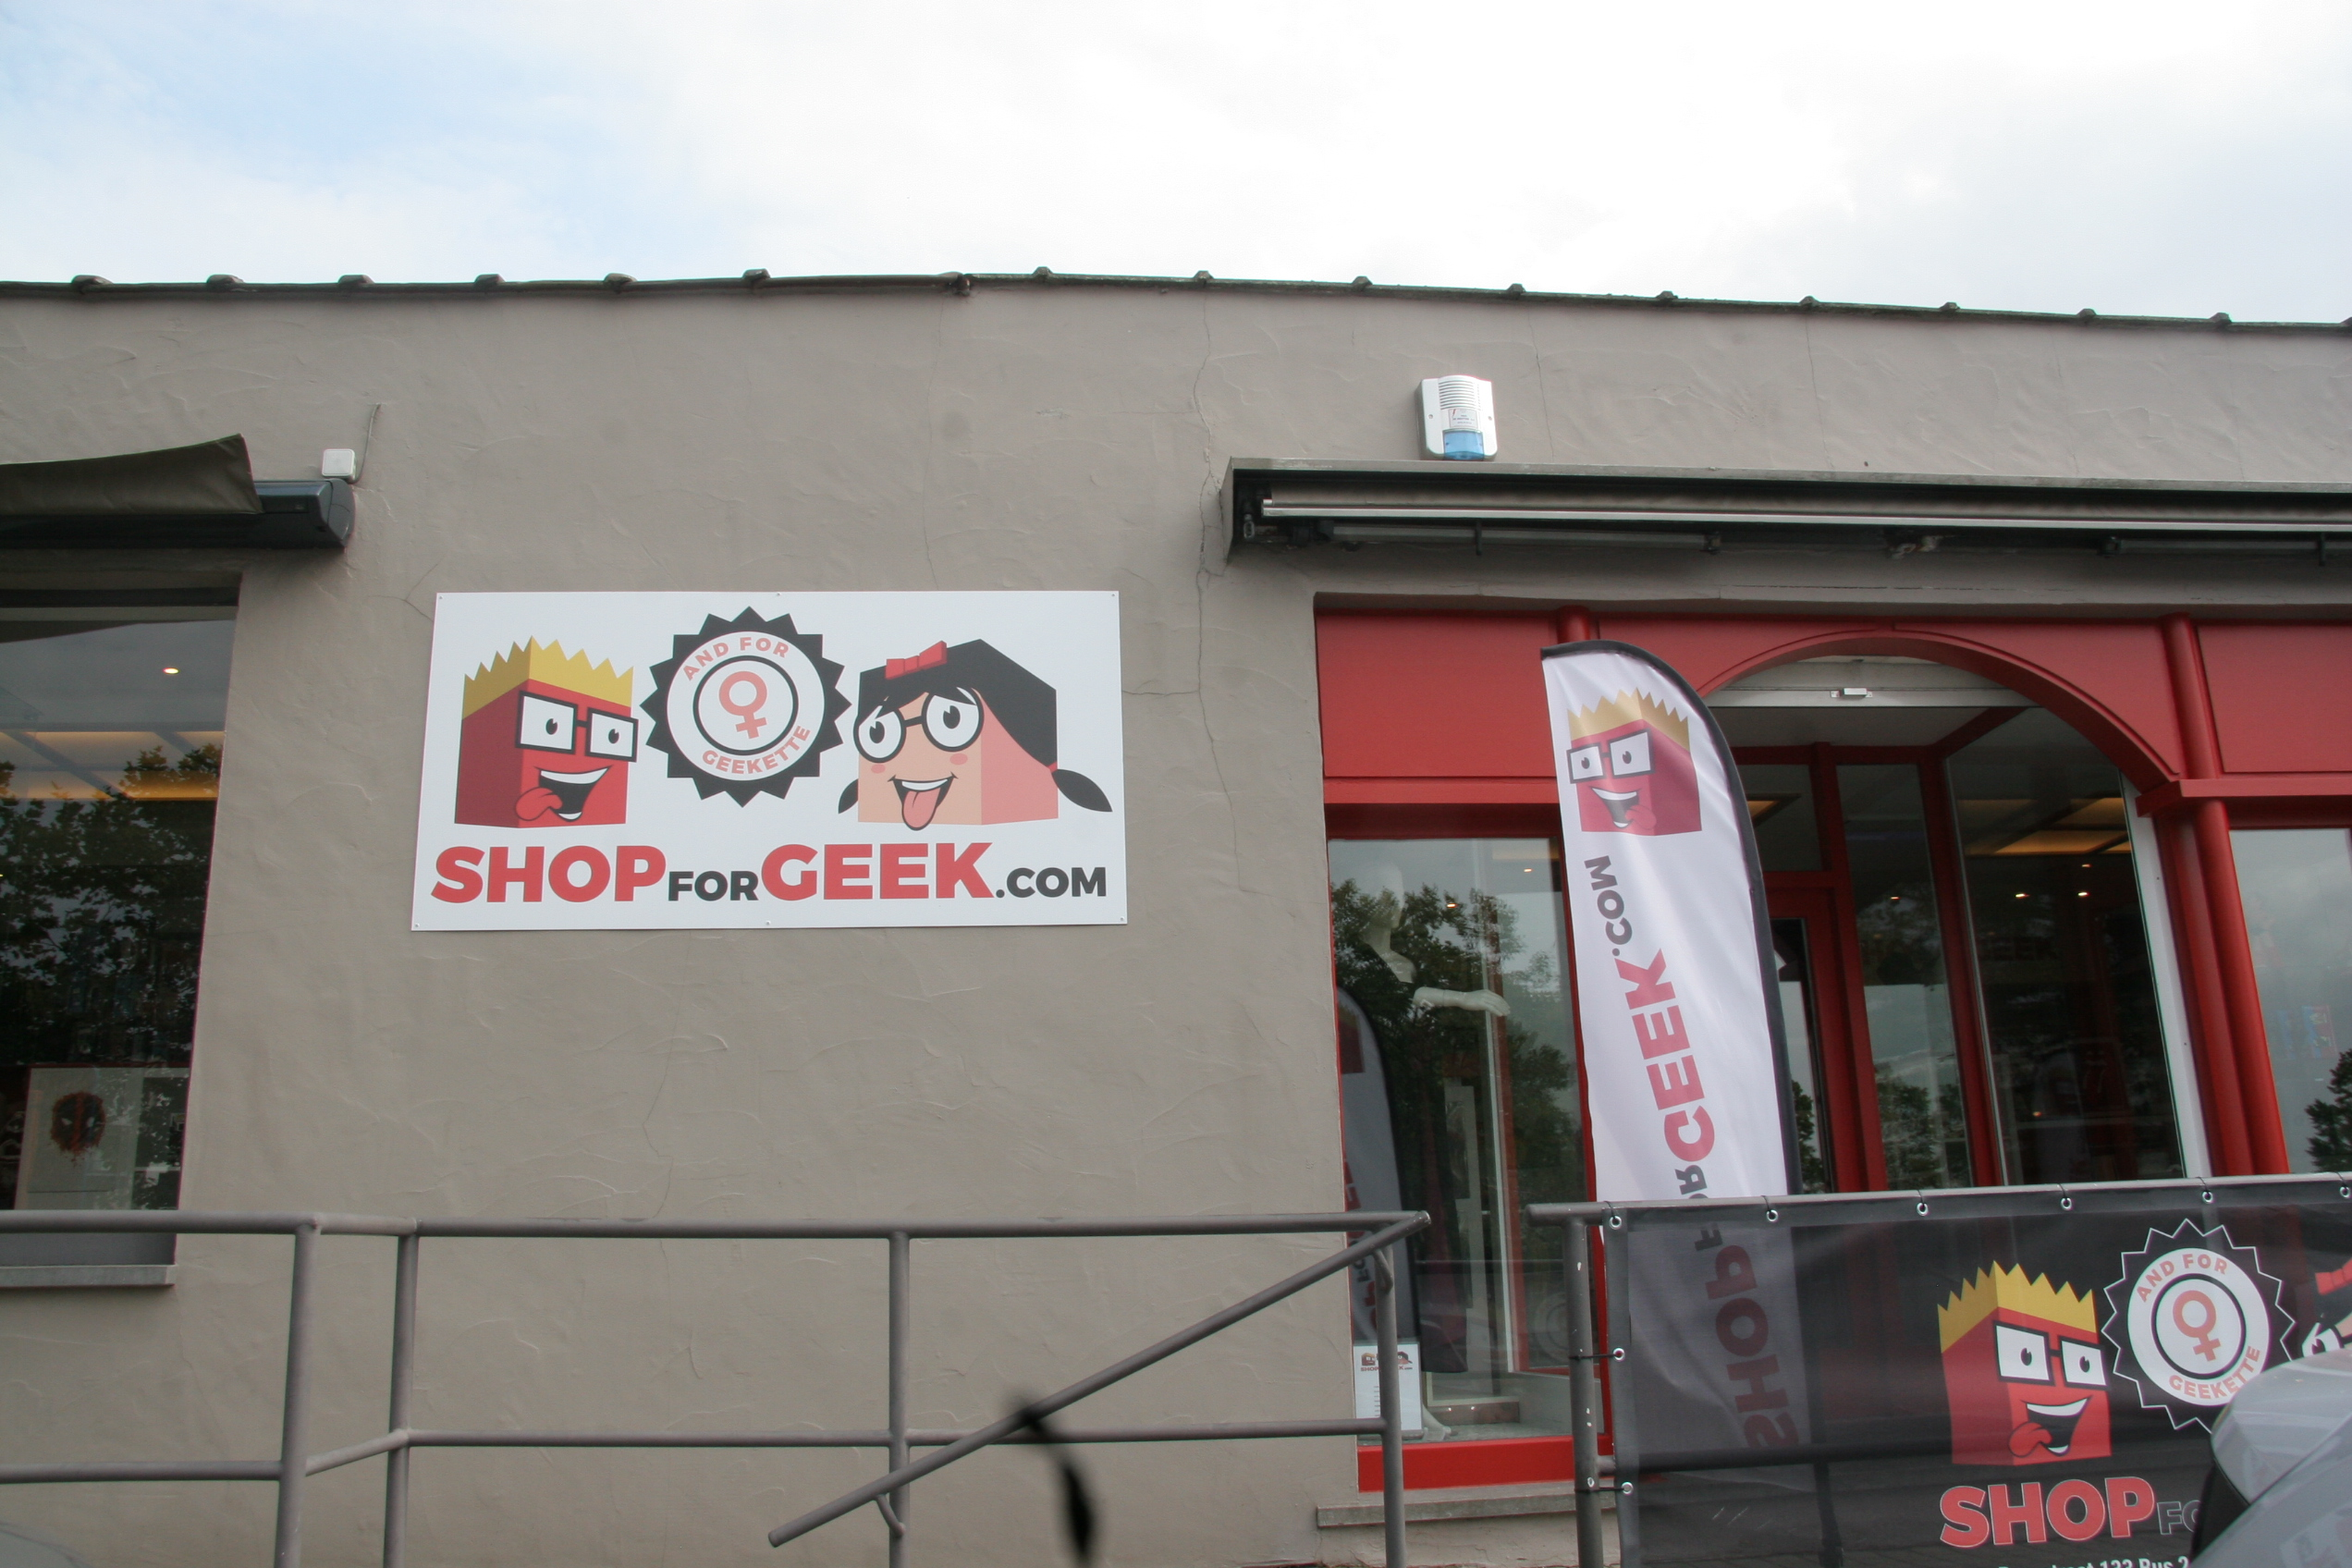 Nieuw in de Bergstraat: Shop for Geek